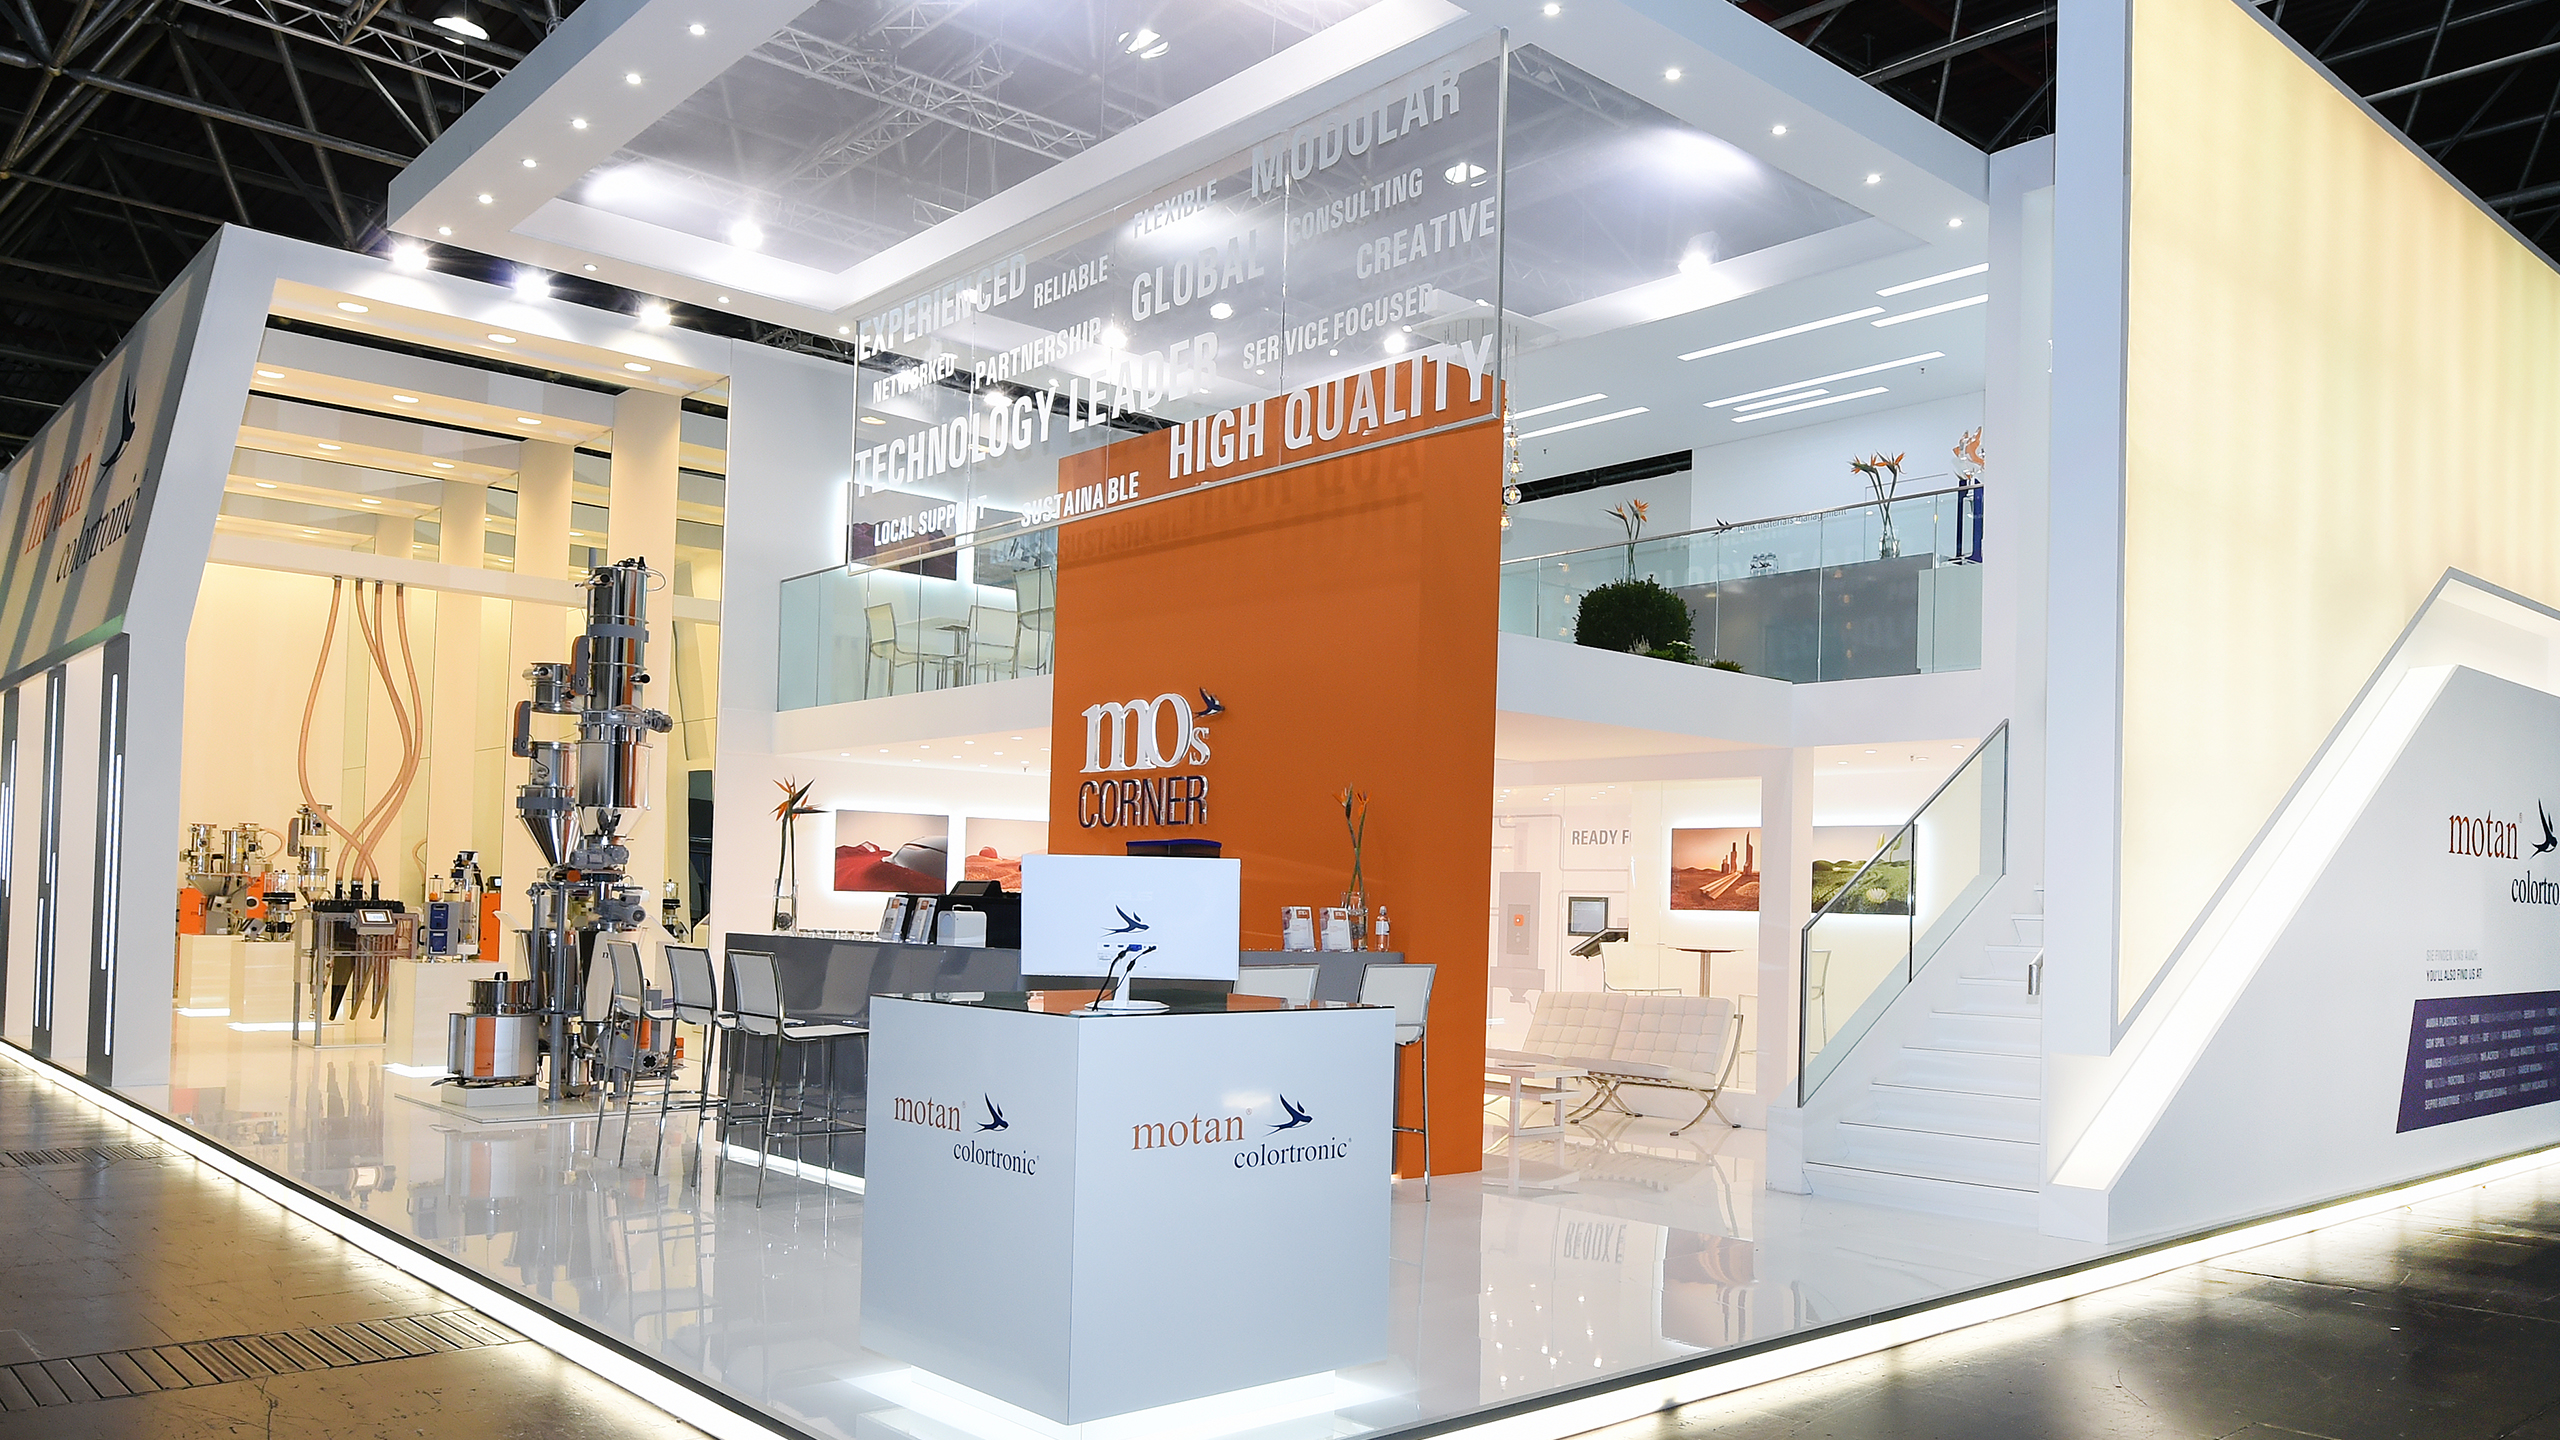 motan-colortronic exhibition booth picture